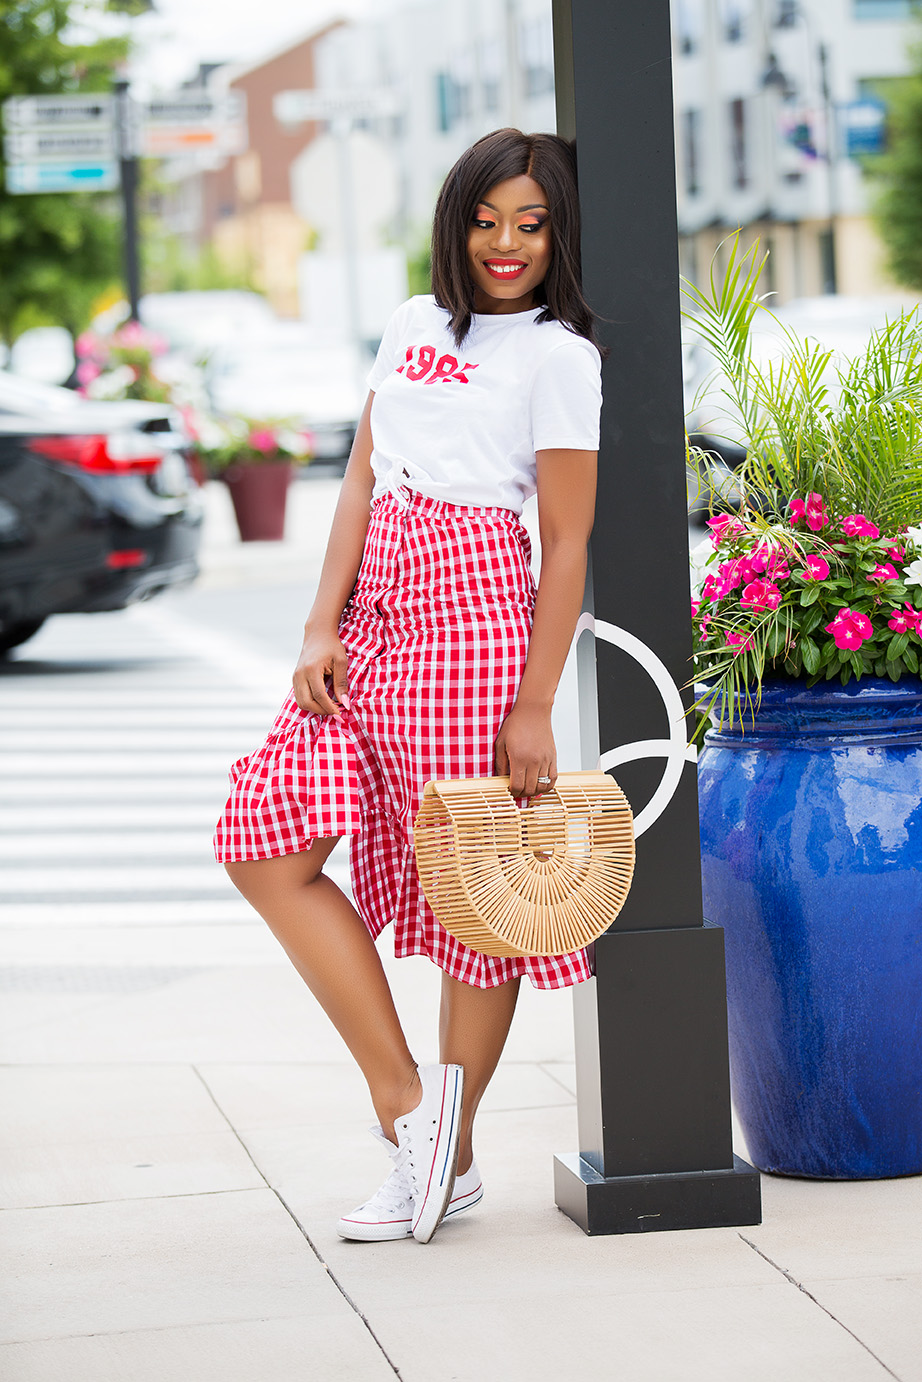 gingham ruffle skirt, graphic tee, www.jadore-fashion.com